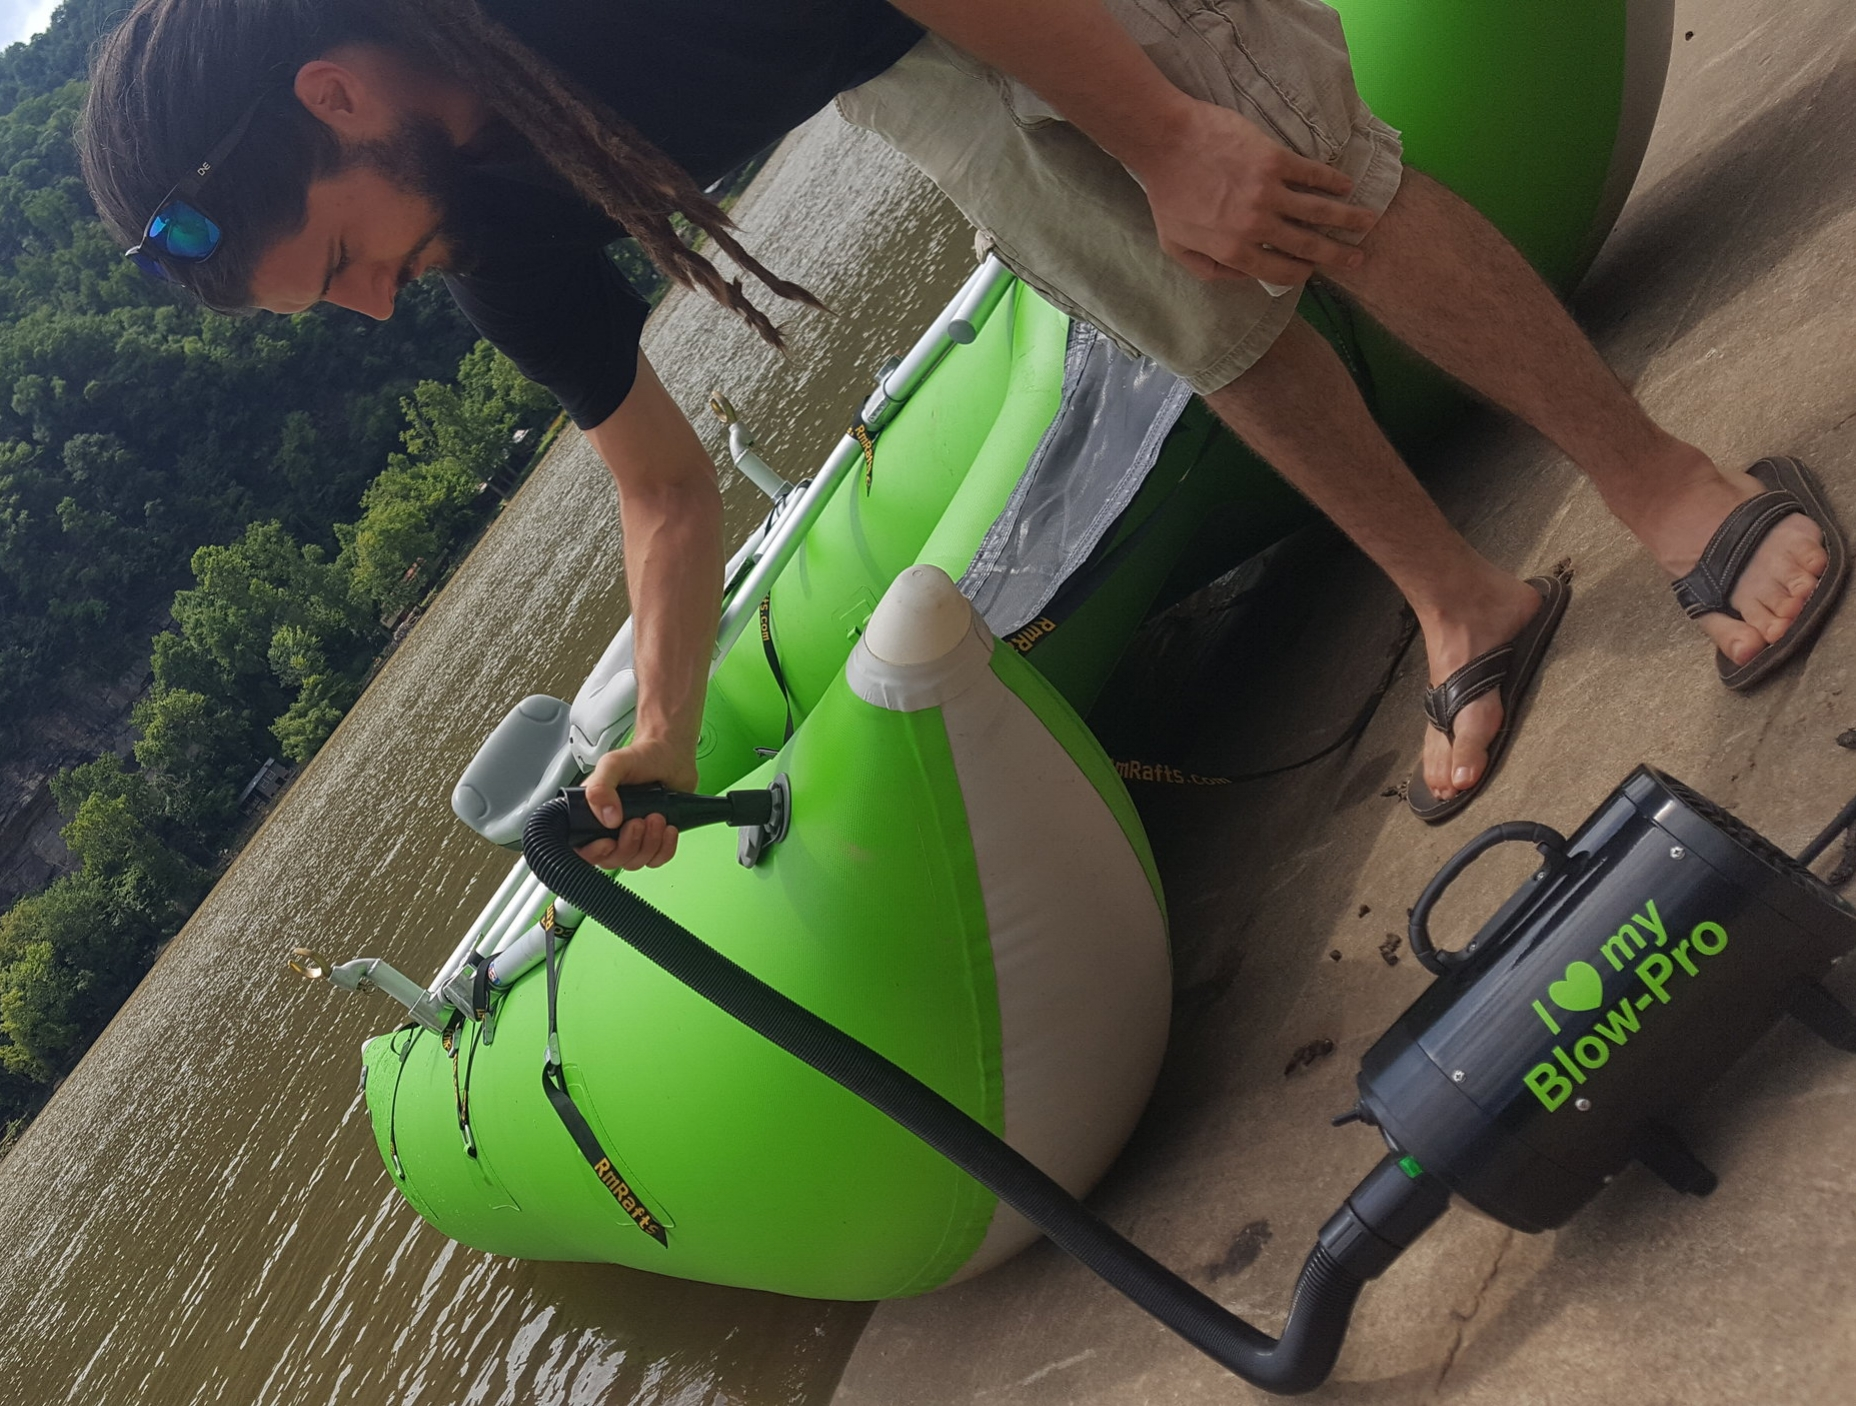 The BP-420 smokesthe competition! - • The BlowPro has 1600 watts - 50 m/s – 110v• Will top off a raft, cat, or kayak to 2.95 psi• Solid steel and molded plastic construction.• Retractable, flexible 3 foot hose extends up to 9 feet.• Available in any color, as long as it's black!• One year manufacturer's warranty• $169.00 / FREE SHIPPING